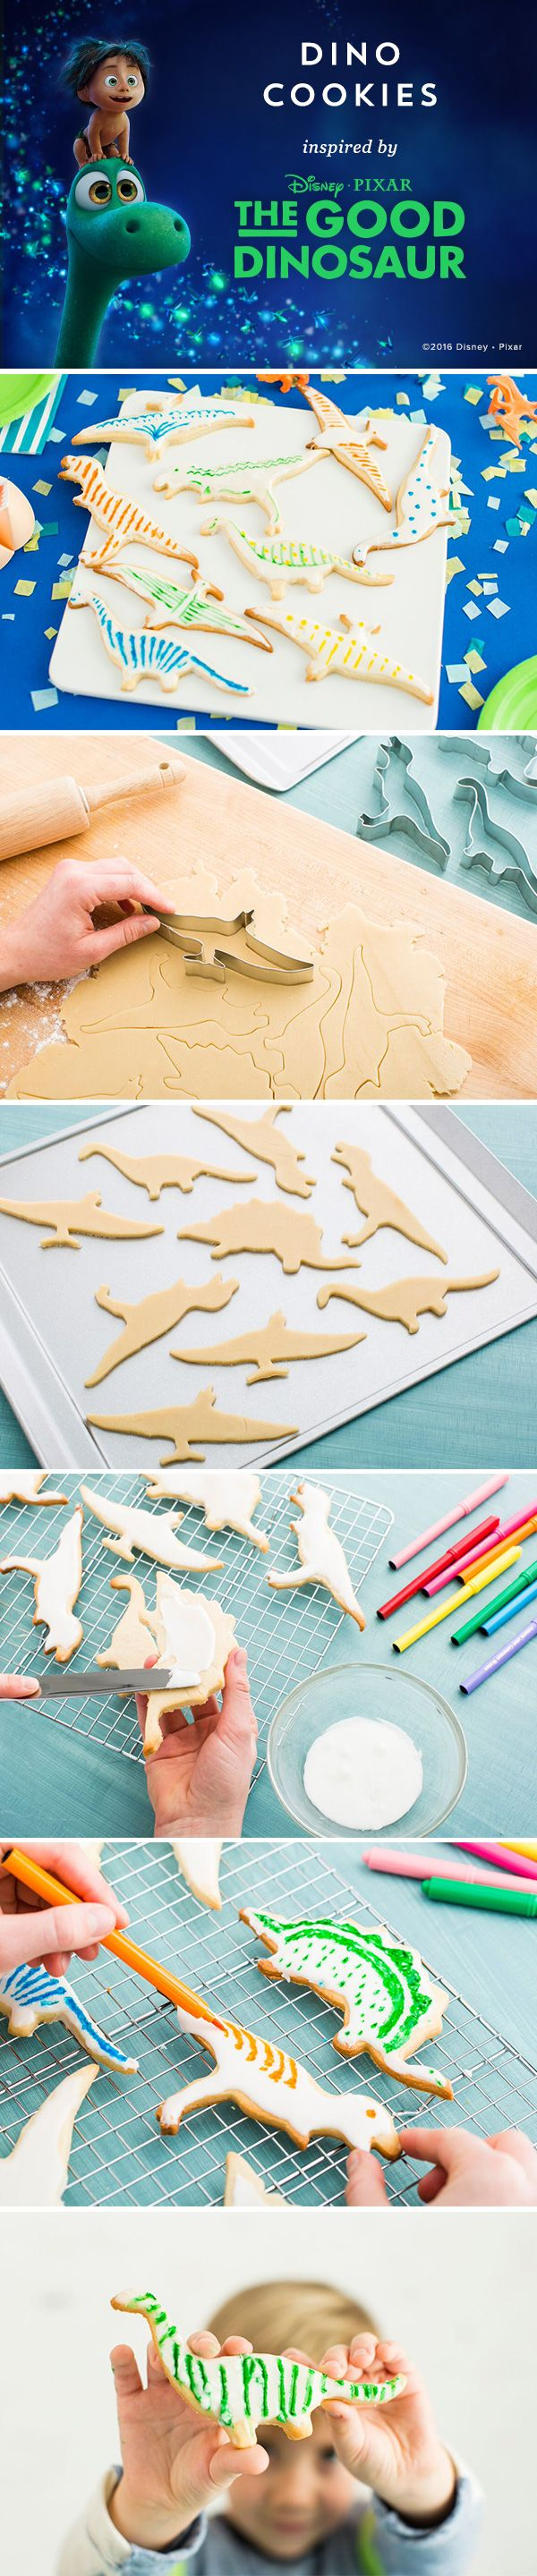 Make these delicious Dinosaur cookies with your kids! The Good Dinosaur will be available on Blu-ray, Digital HD & Disney Movies Anywhere February 23. 1. Use dinosaur cookie cutters on sugar cookie dough 2. Bake & let the cookies cool 3. Add a layer of icing that hardens 4. Draw patterns and designs on the cookies with food coloring pens